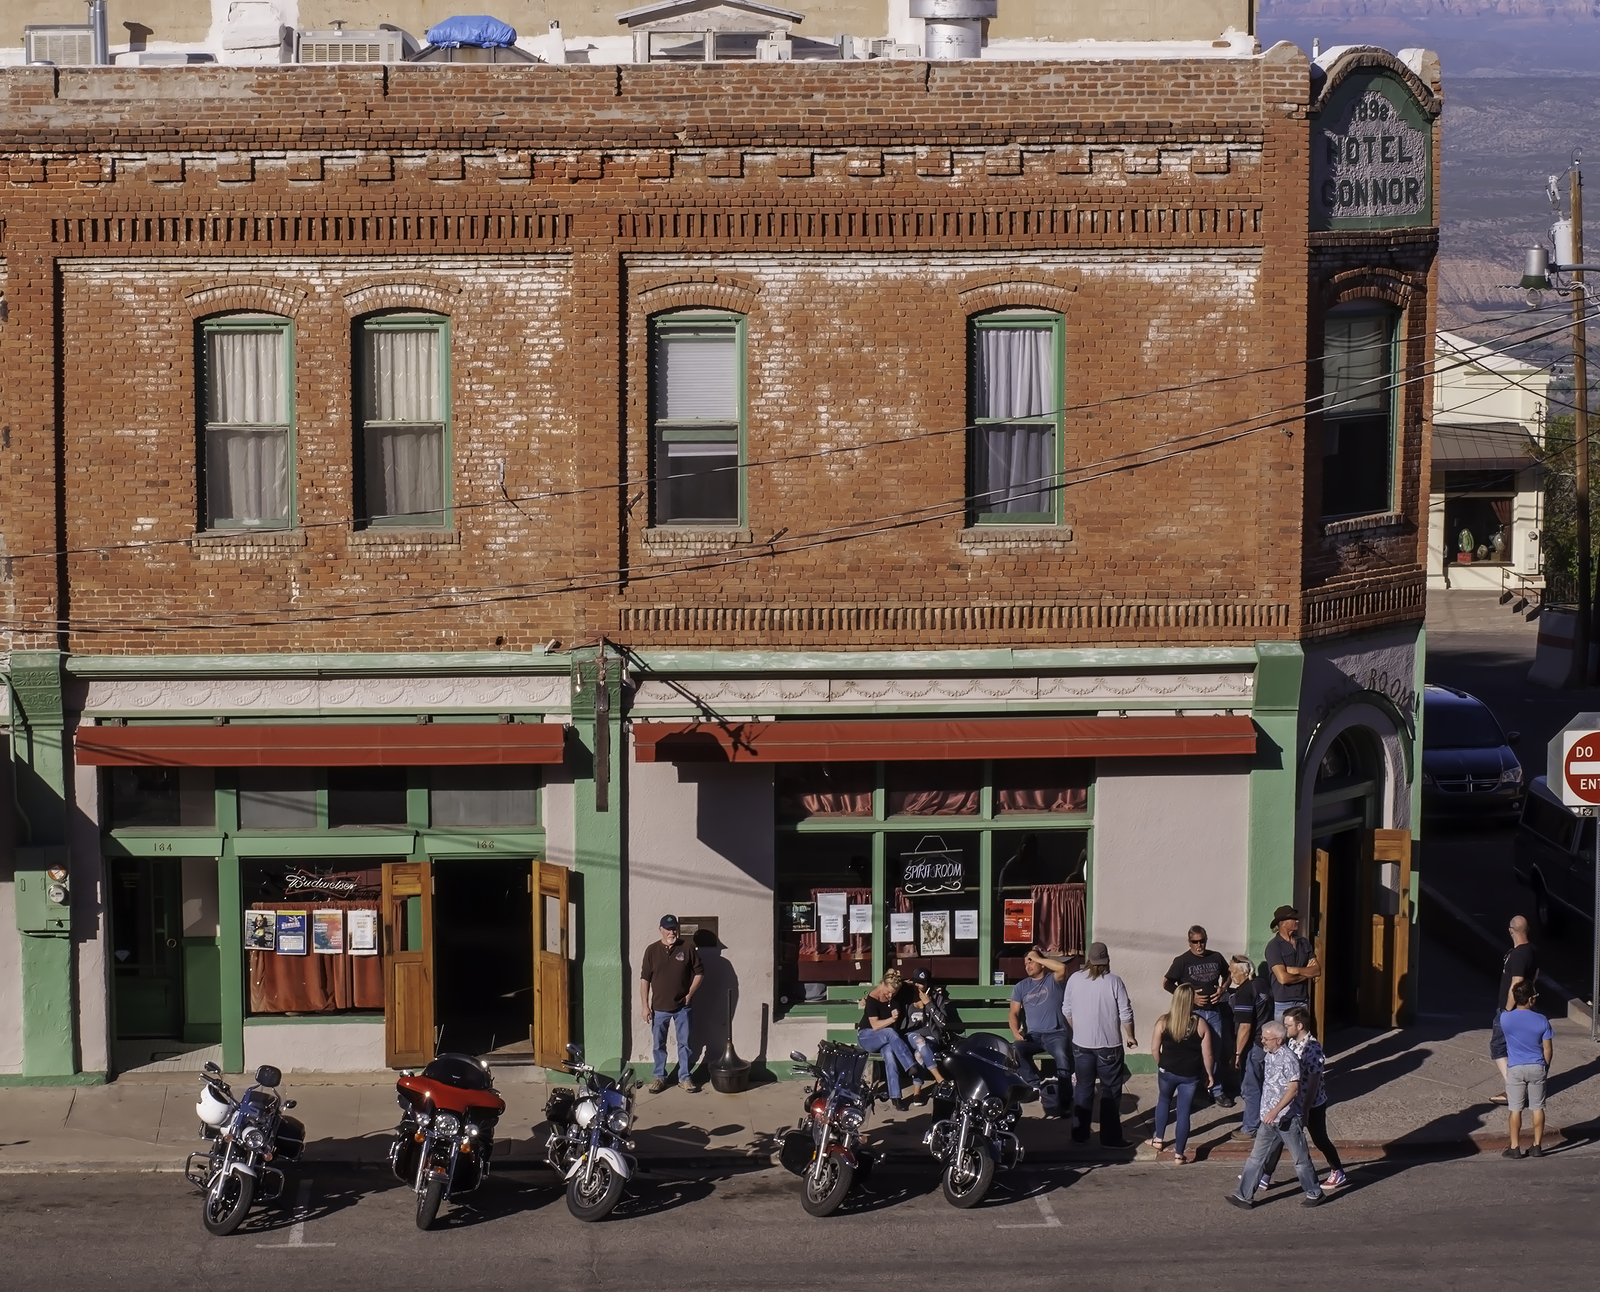 Save Download Preview Jerome, Arizona, USA 04/21/2019 People standing outside of the Conner Hotel next to parked motorcycles on the street on a sunny spring day